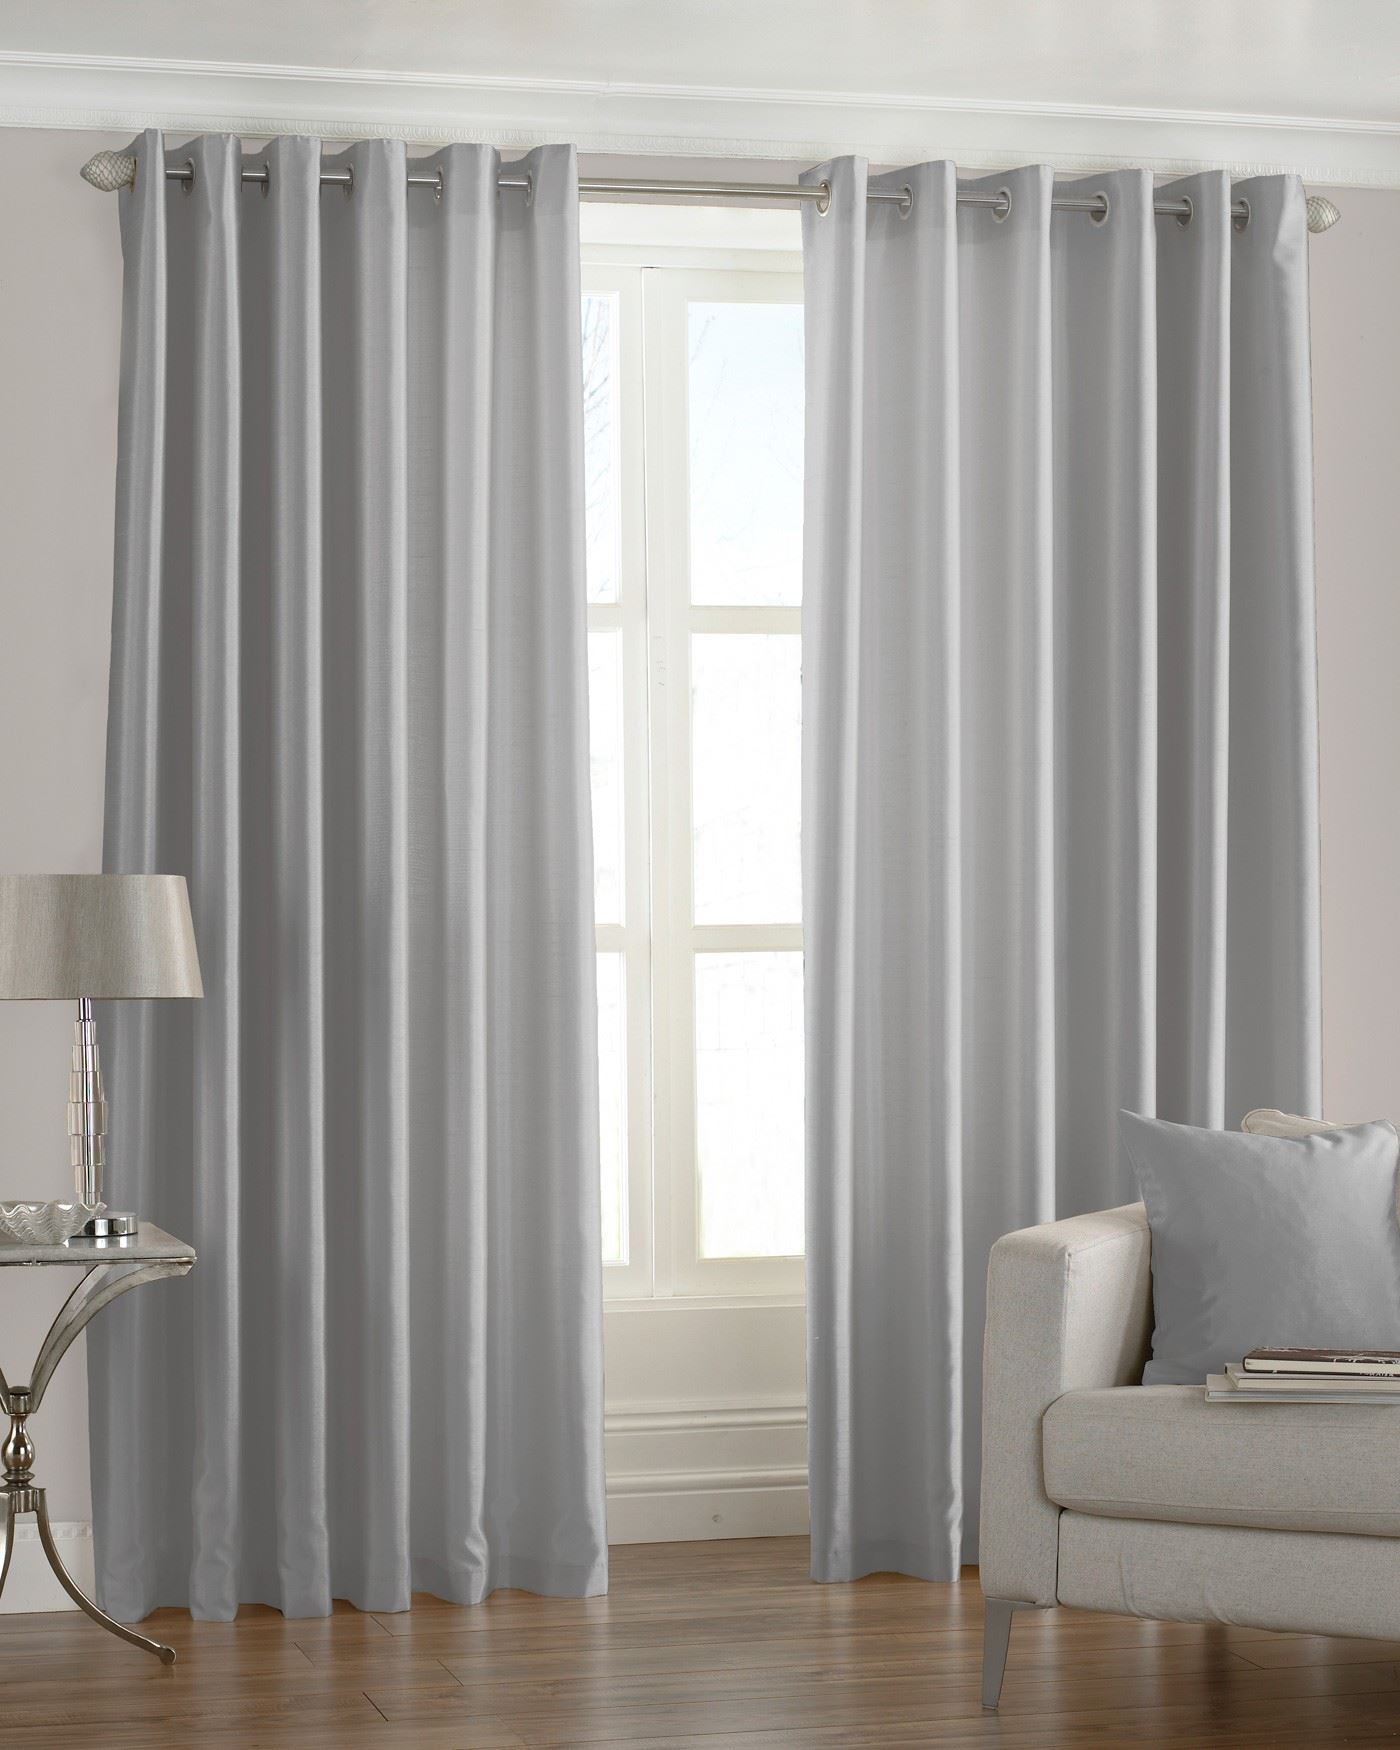 PLAIN FAUX SILK SILVER GREY RING TOP CURTAINS *7 SIZES* | eBay